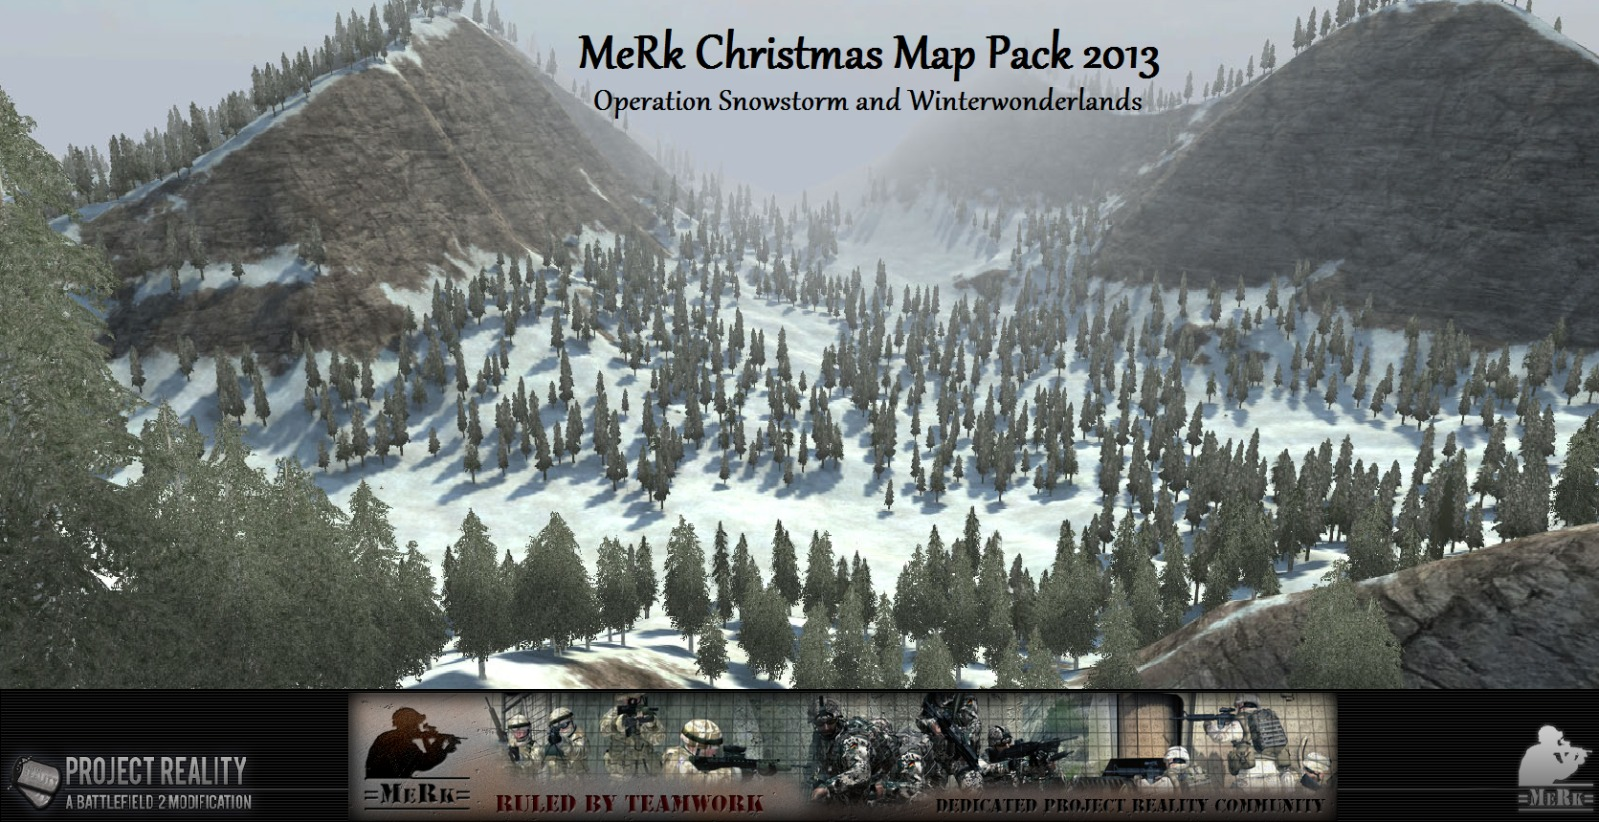 MeRk Christmas Map pack 2013